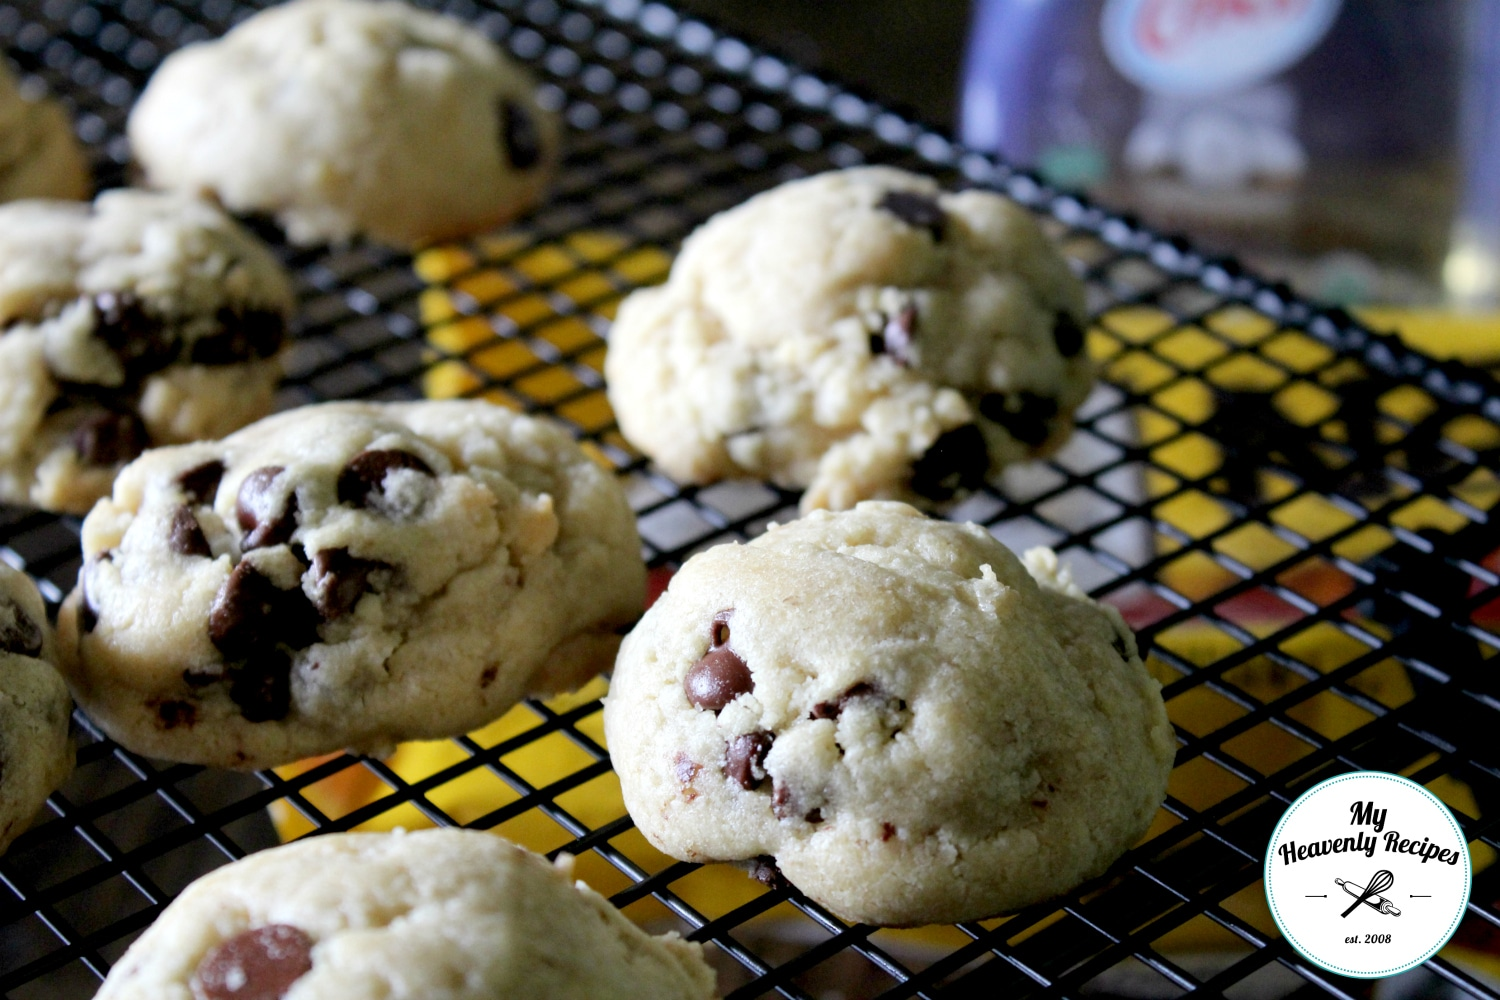 Coconut Oil Chocolate Chip Cookies My Heavenly Recipes